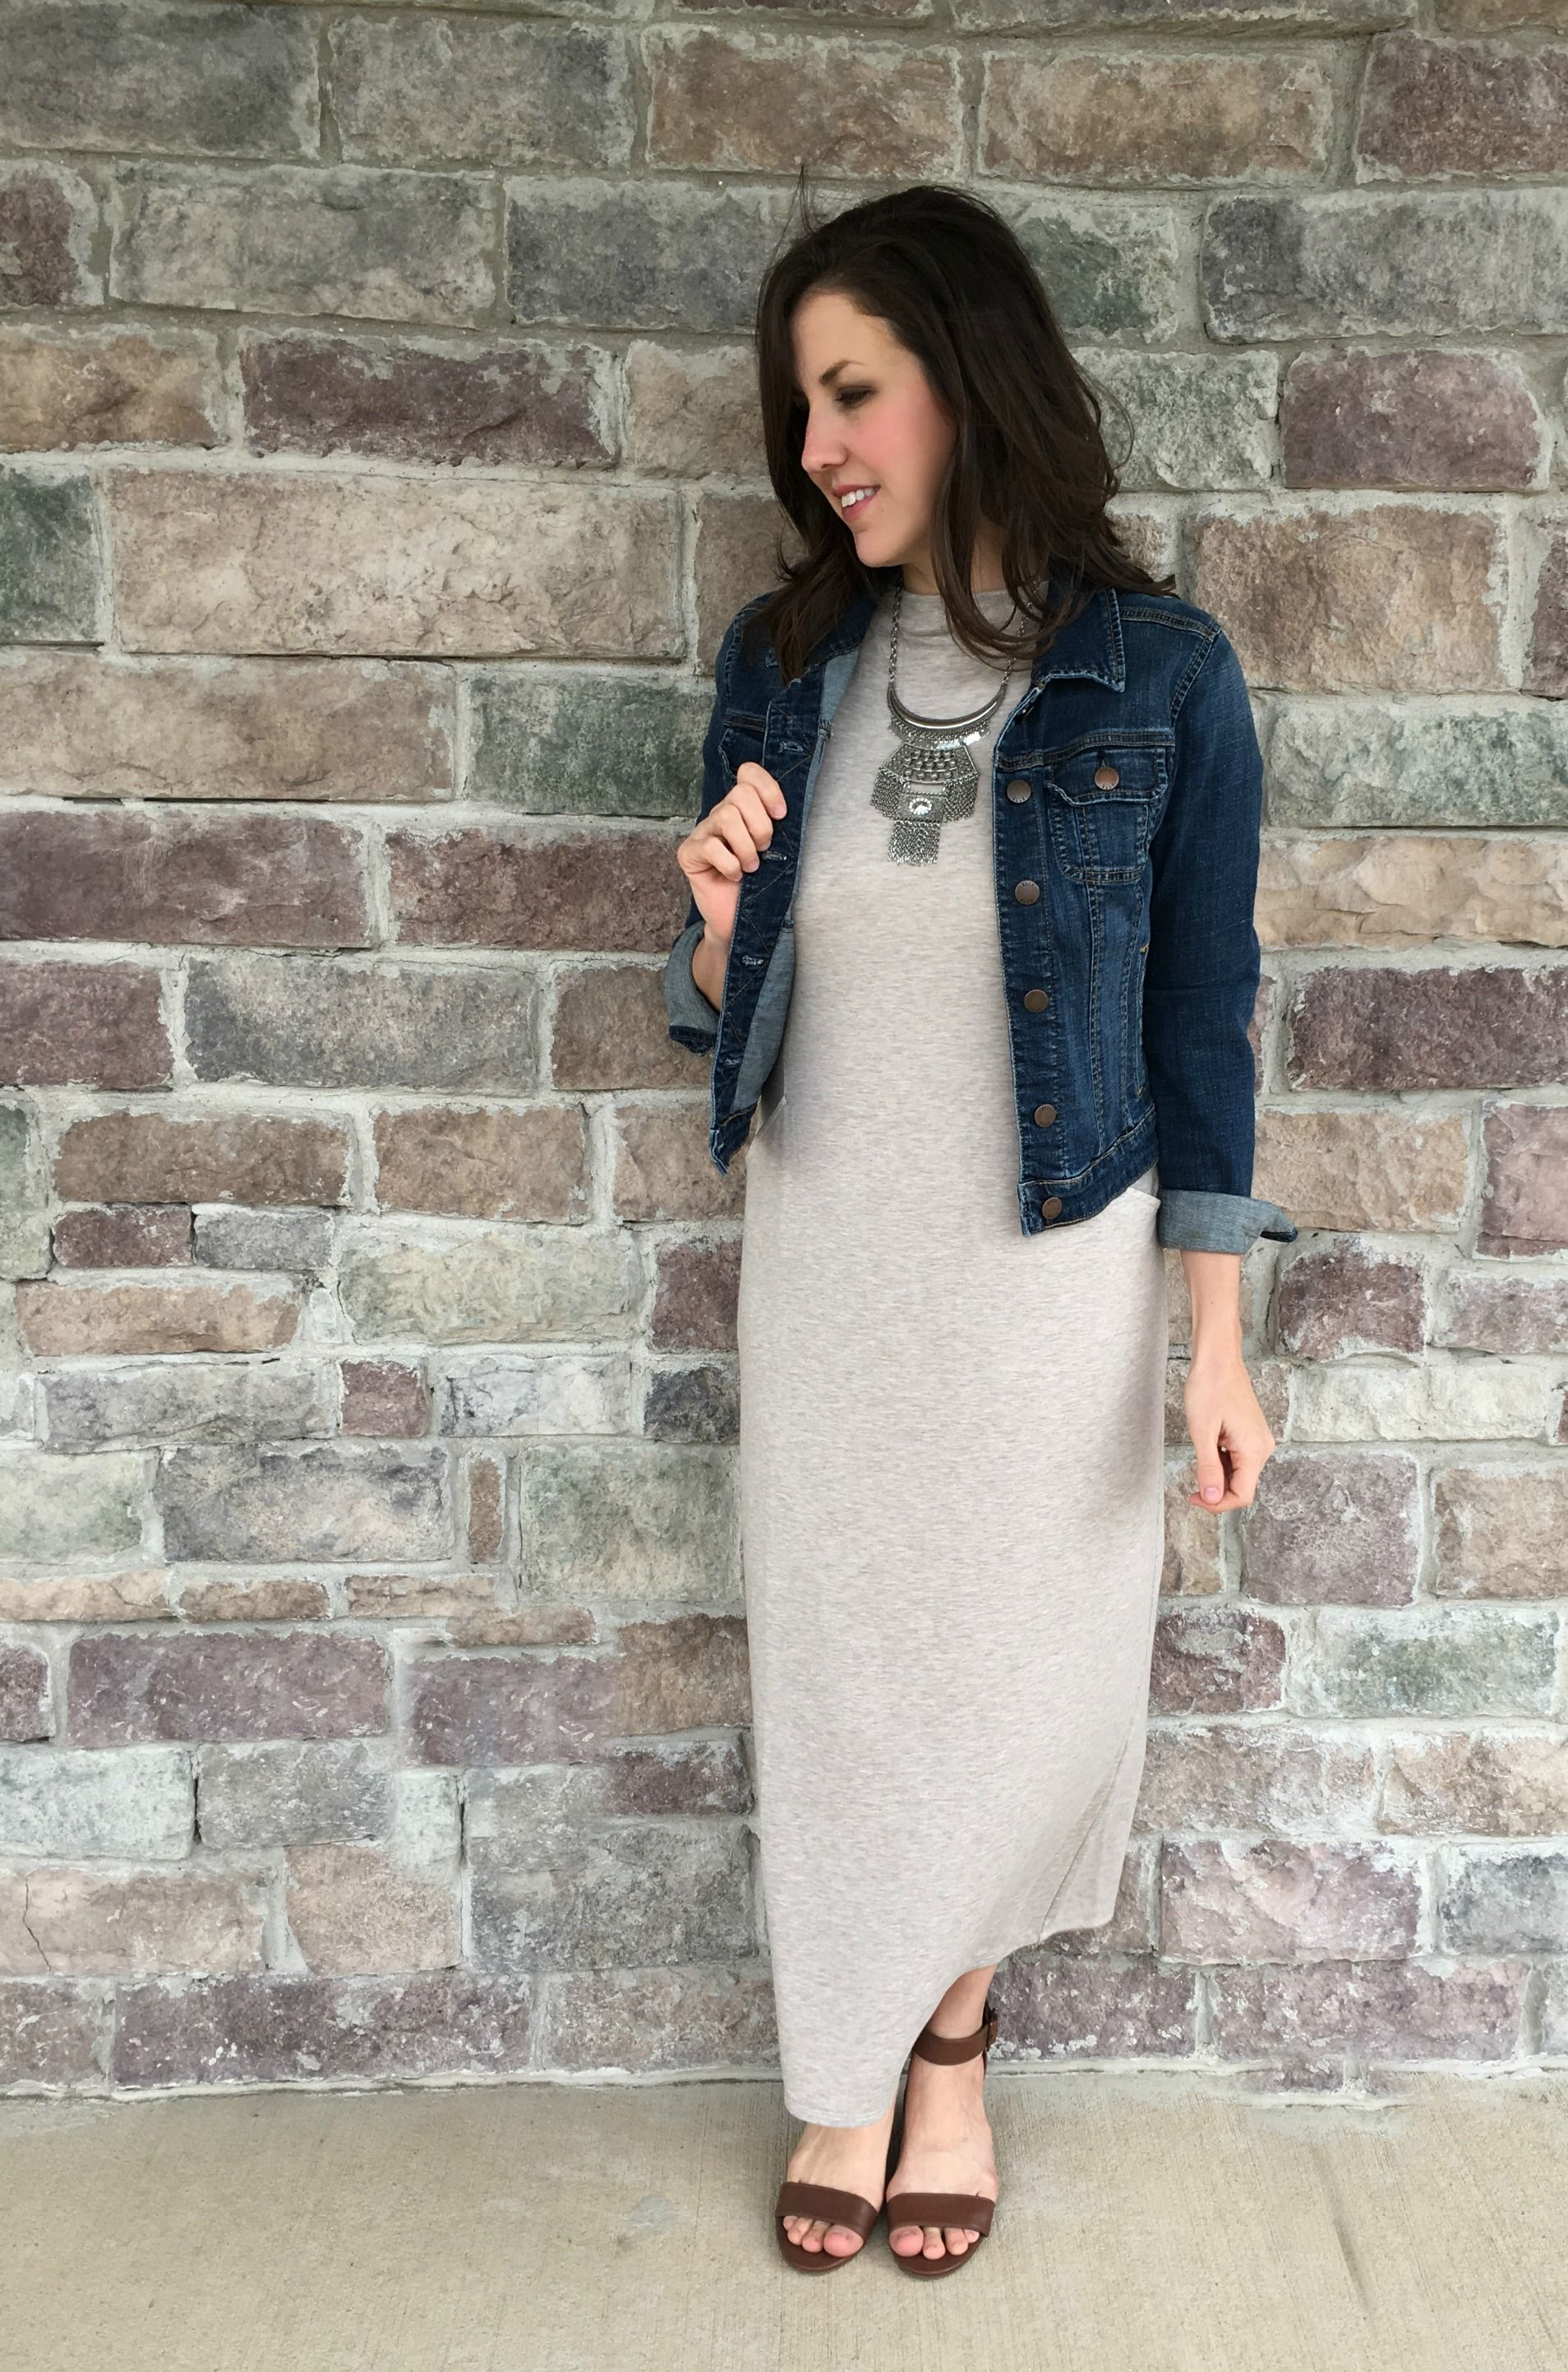 ffd2dbf0dca2 Andrea from @mommainflipflop layers a denim jacket over her Pure Jill luxe  tencel mock-neck maxi dress.